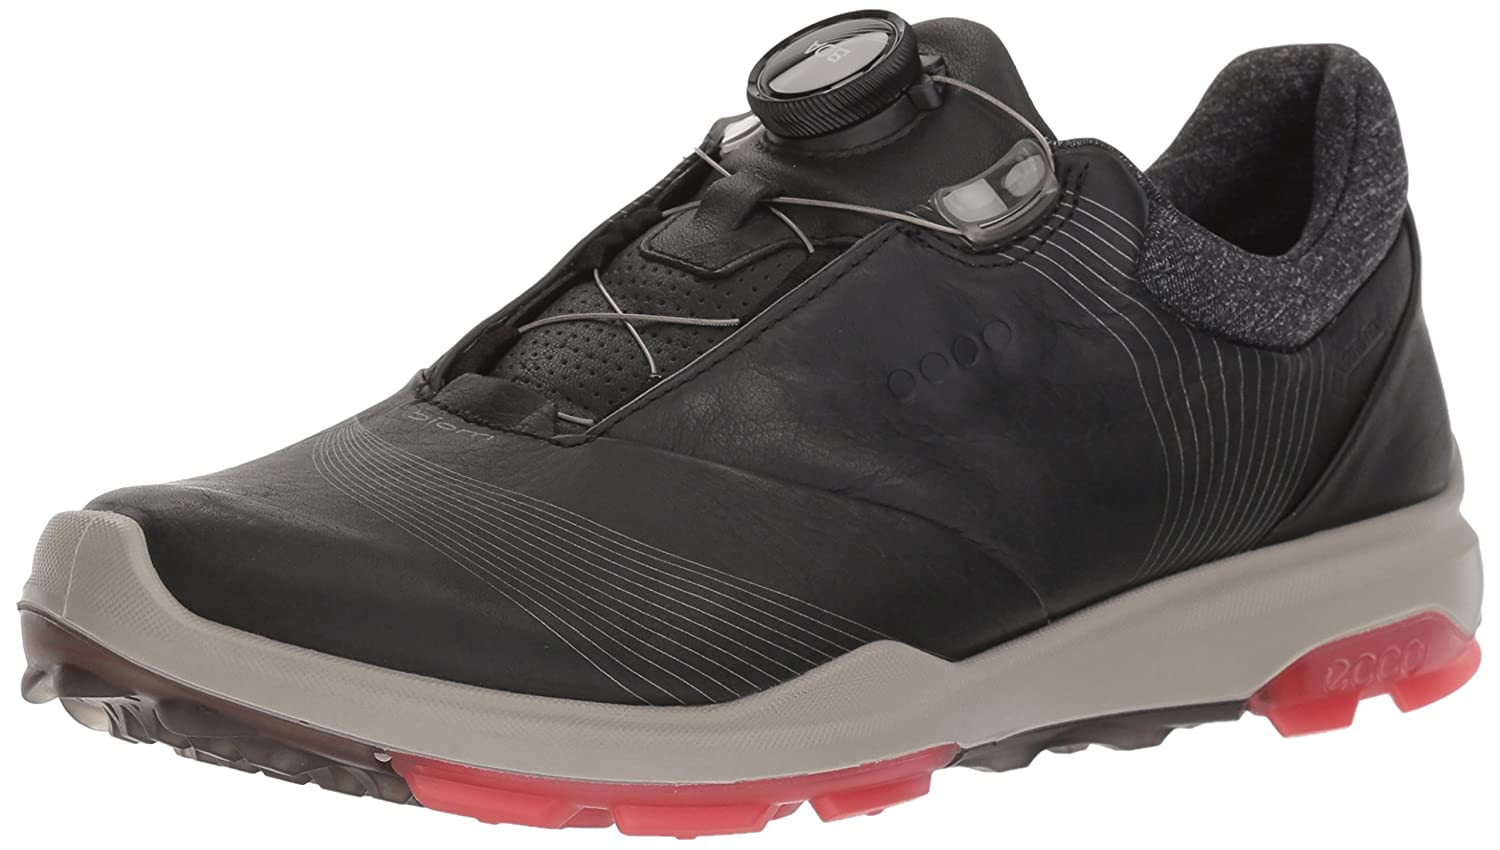 ECCO Women's Biom Hybrid 3 Boa Gore-Tex Golf Shoe B074H9RZVV 37 M EU (6-6.5 US)|Black/Teaberry